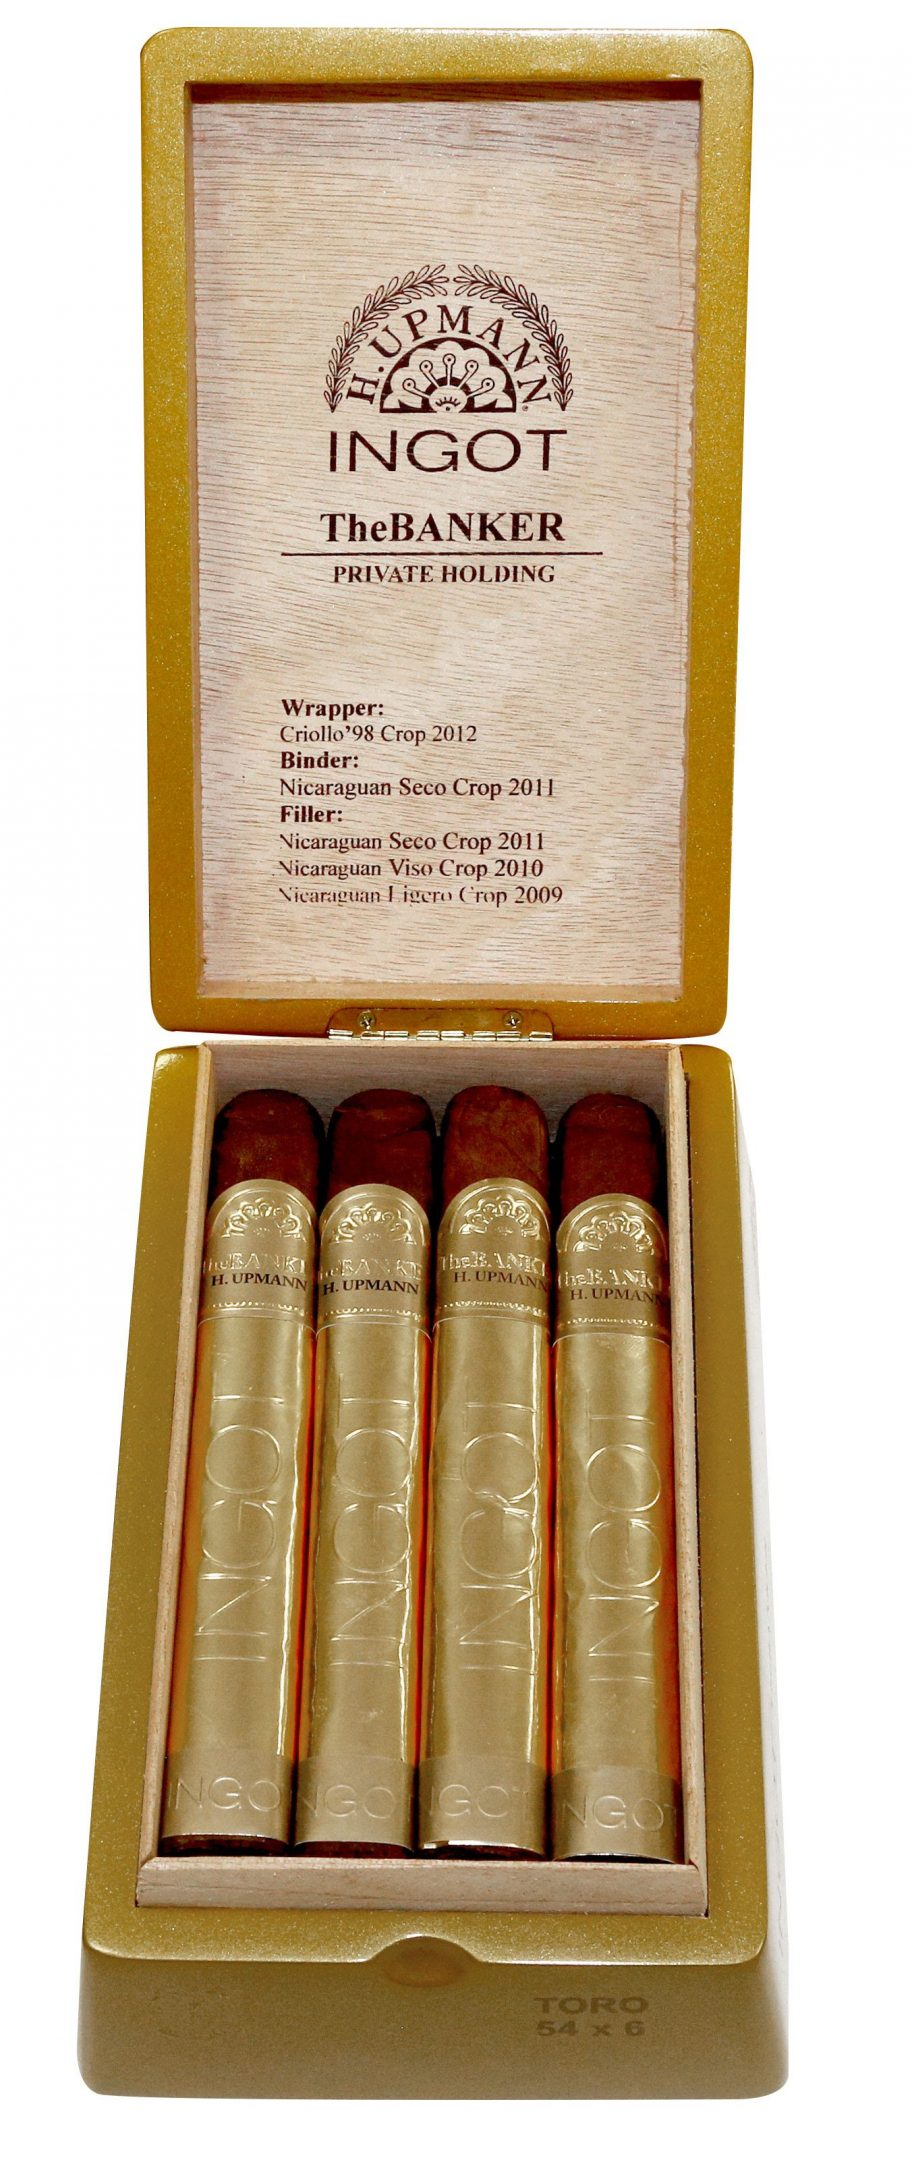 Cigar News: Altadis Announces Limited H. Upmann The Banker Private Holding Ingot